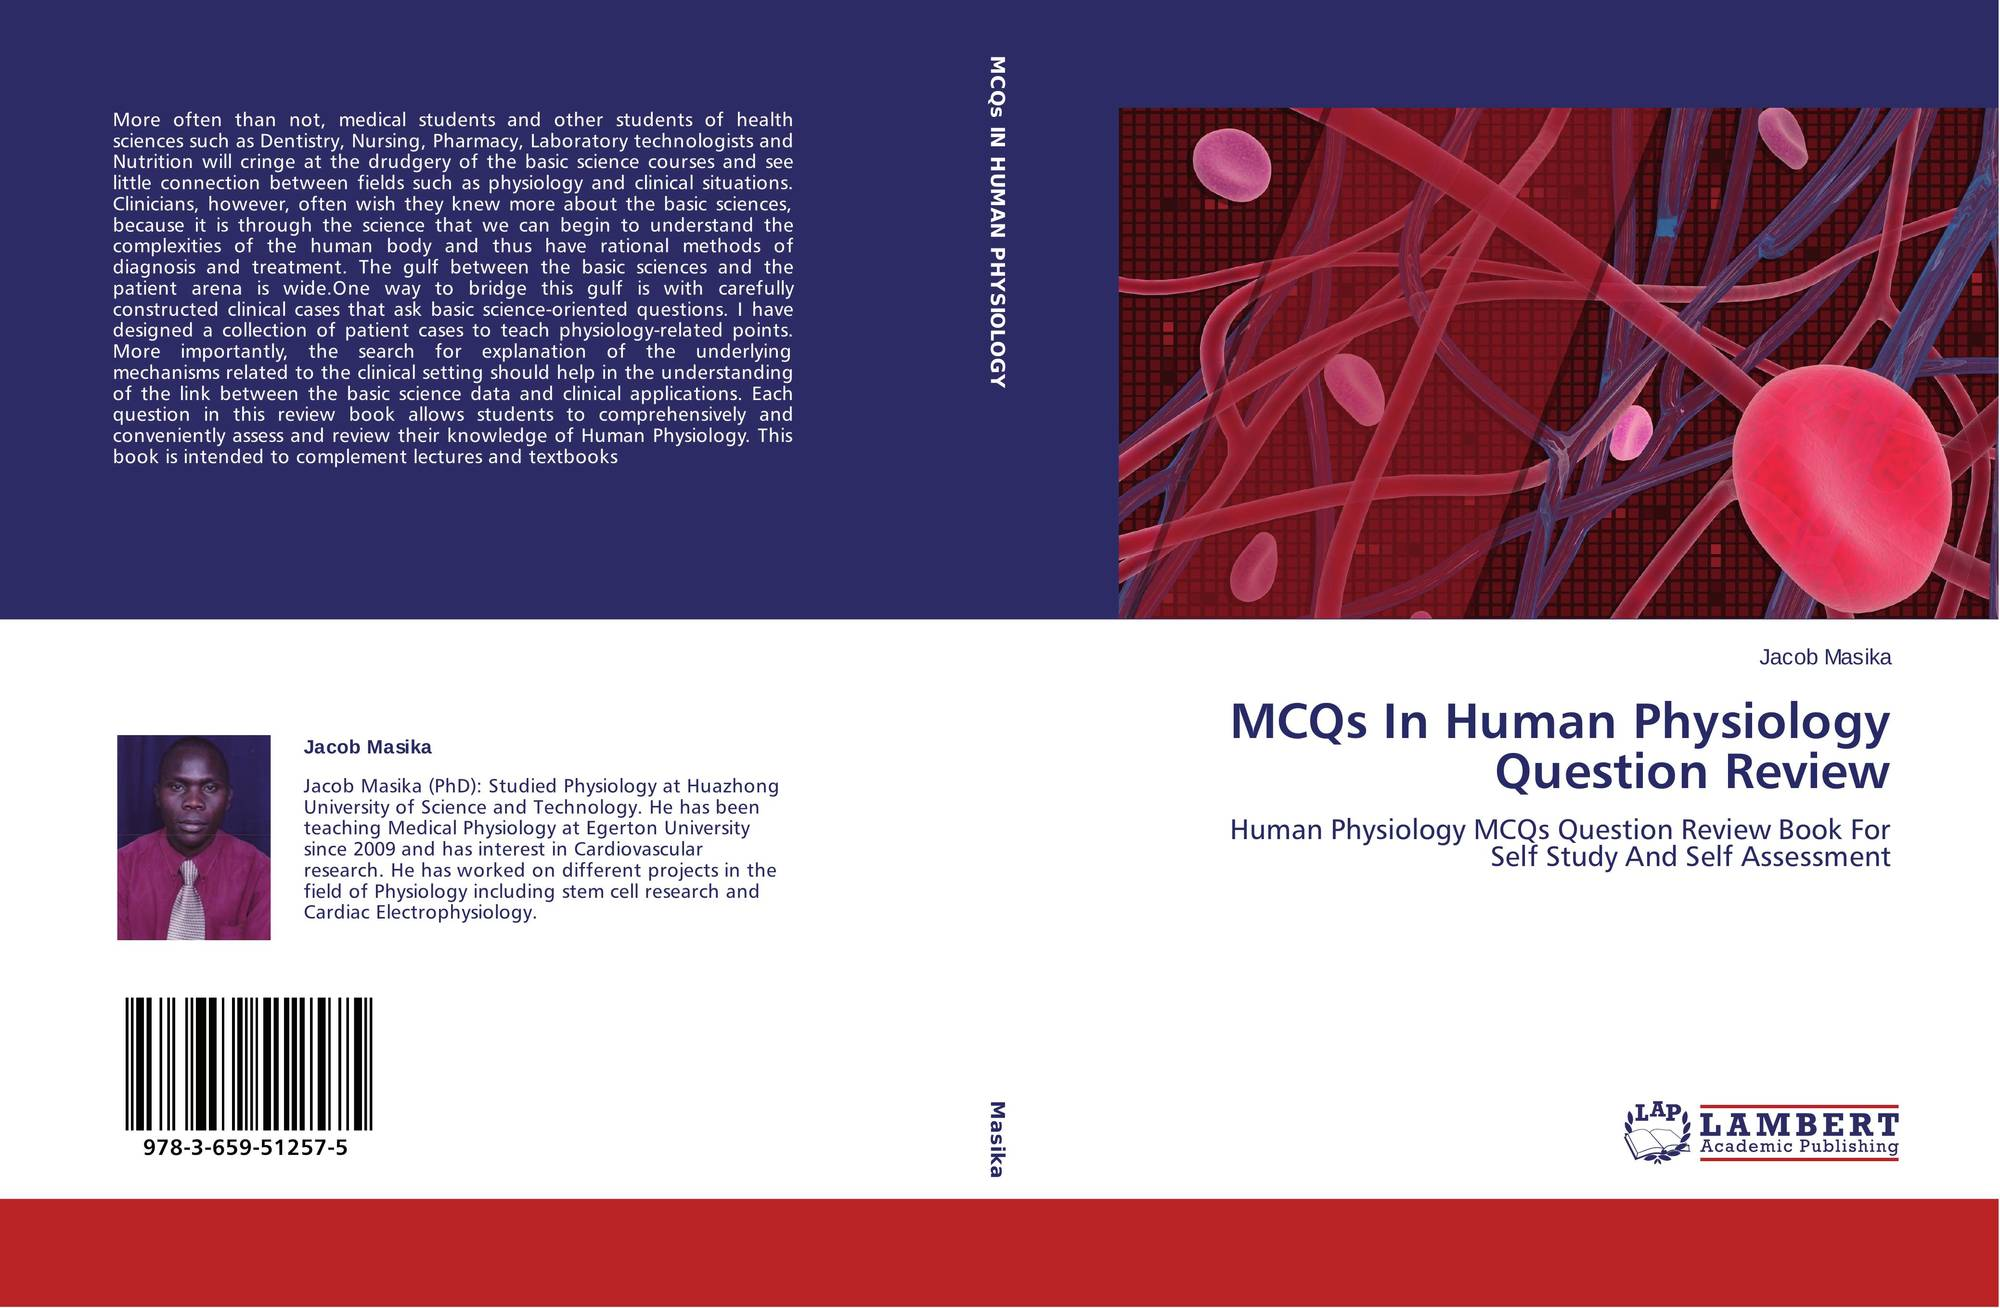 MCQs In Human Physiology Question Review, 978-3-659-51257-5